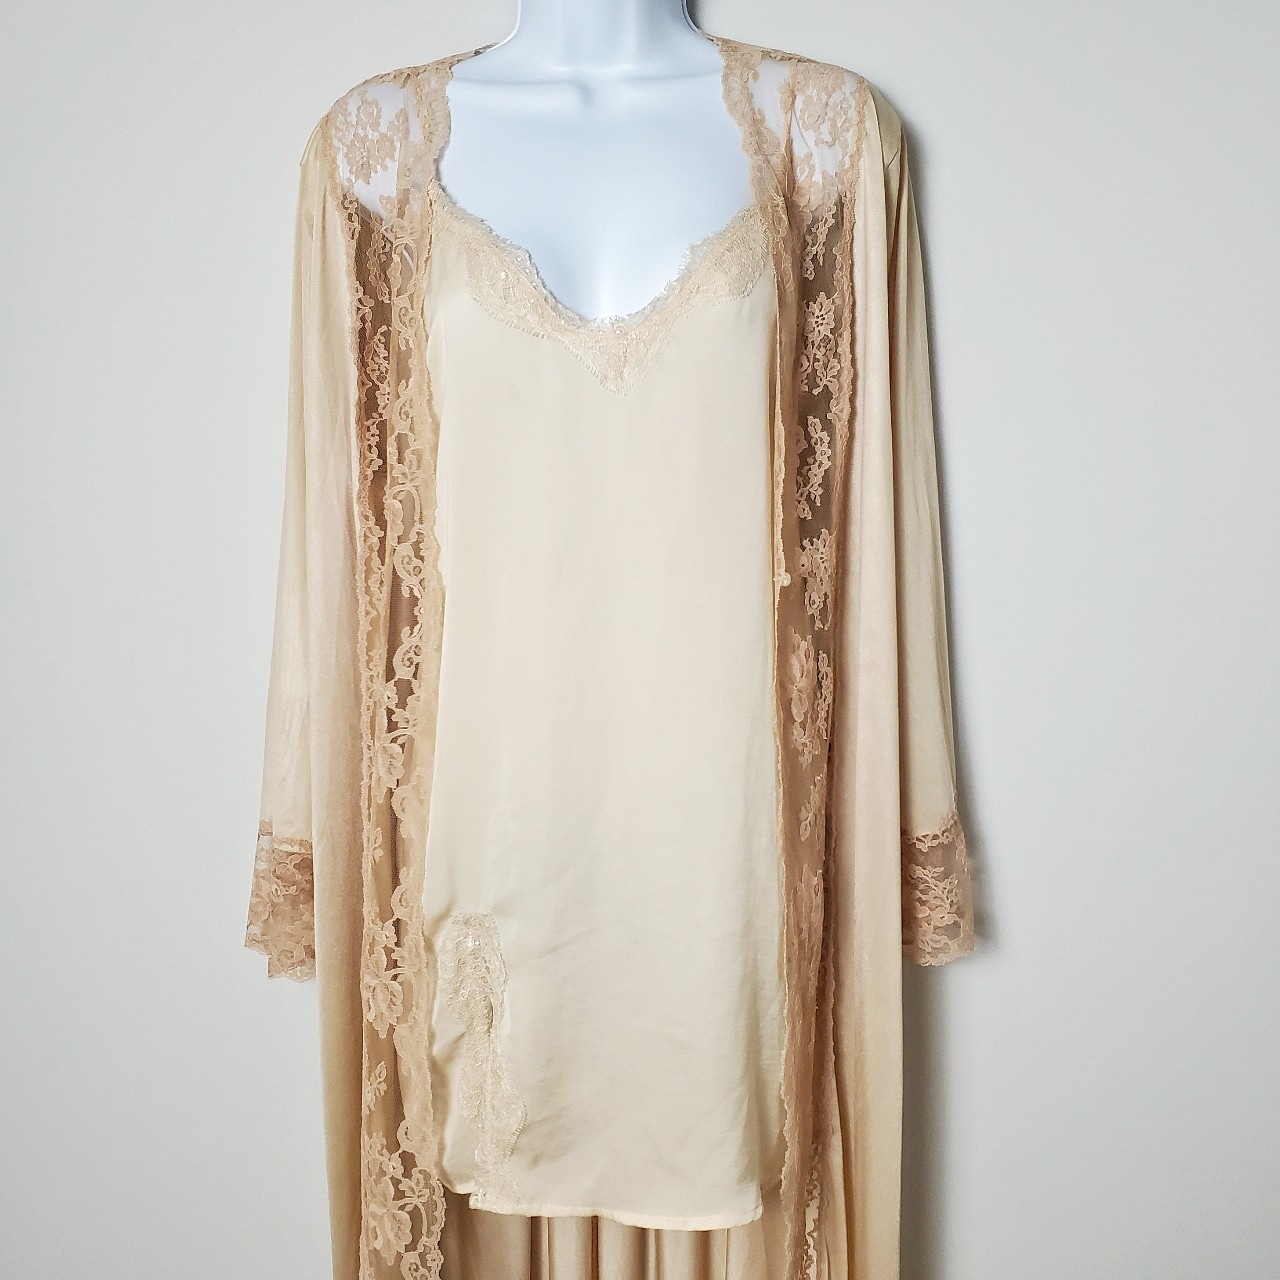 Product Image 1 - Vintage nude lace duster robe  Kayser